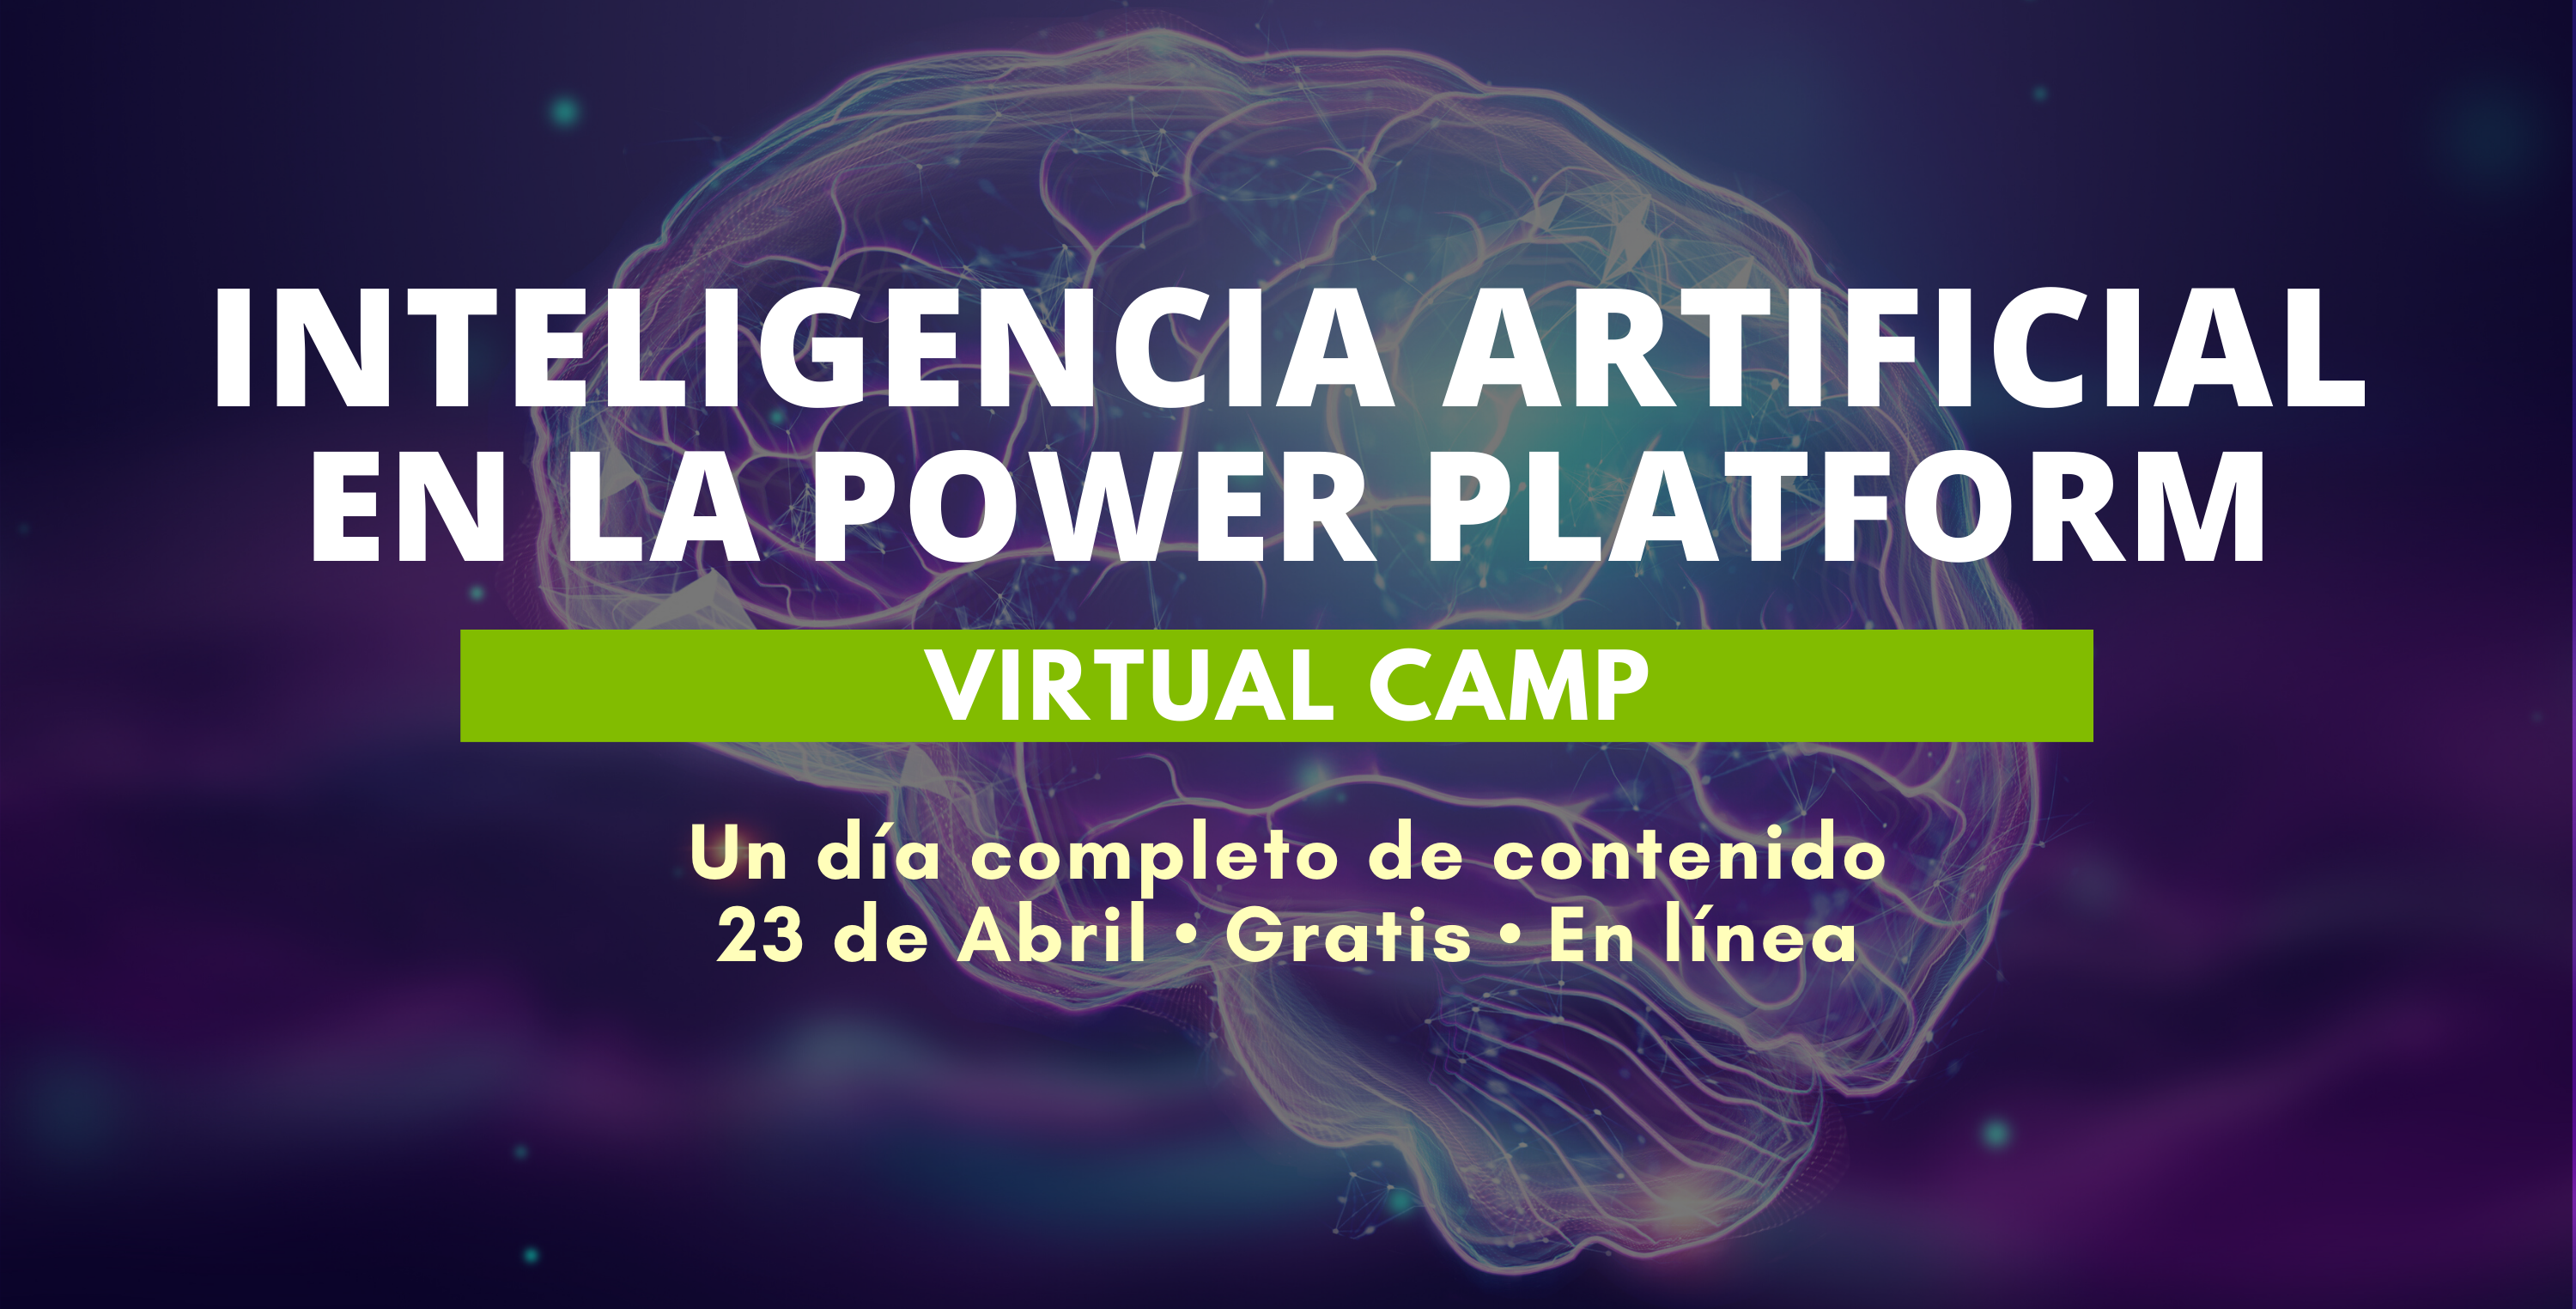 INTELIGENCIA ARTIFICIAL EN LA POWER PLATFORM-1